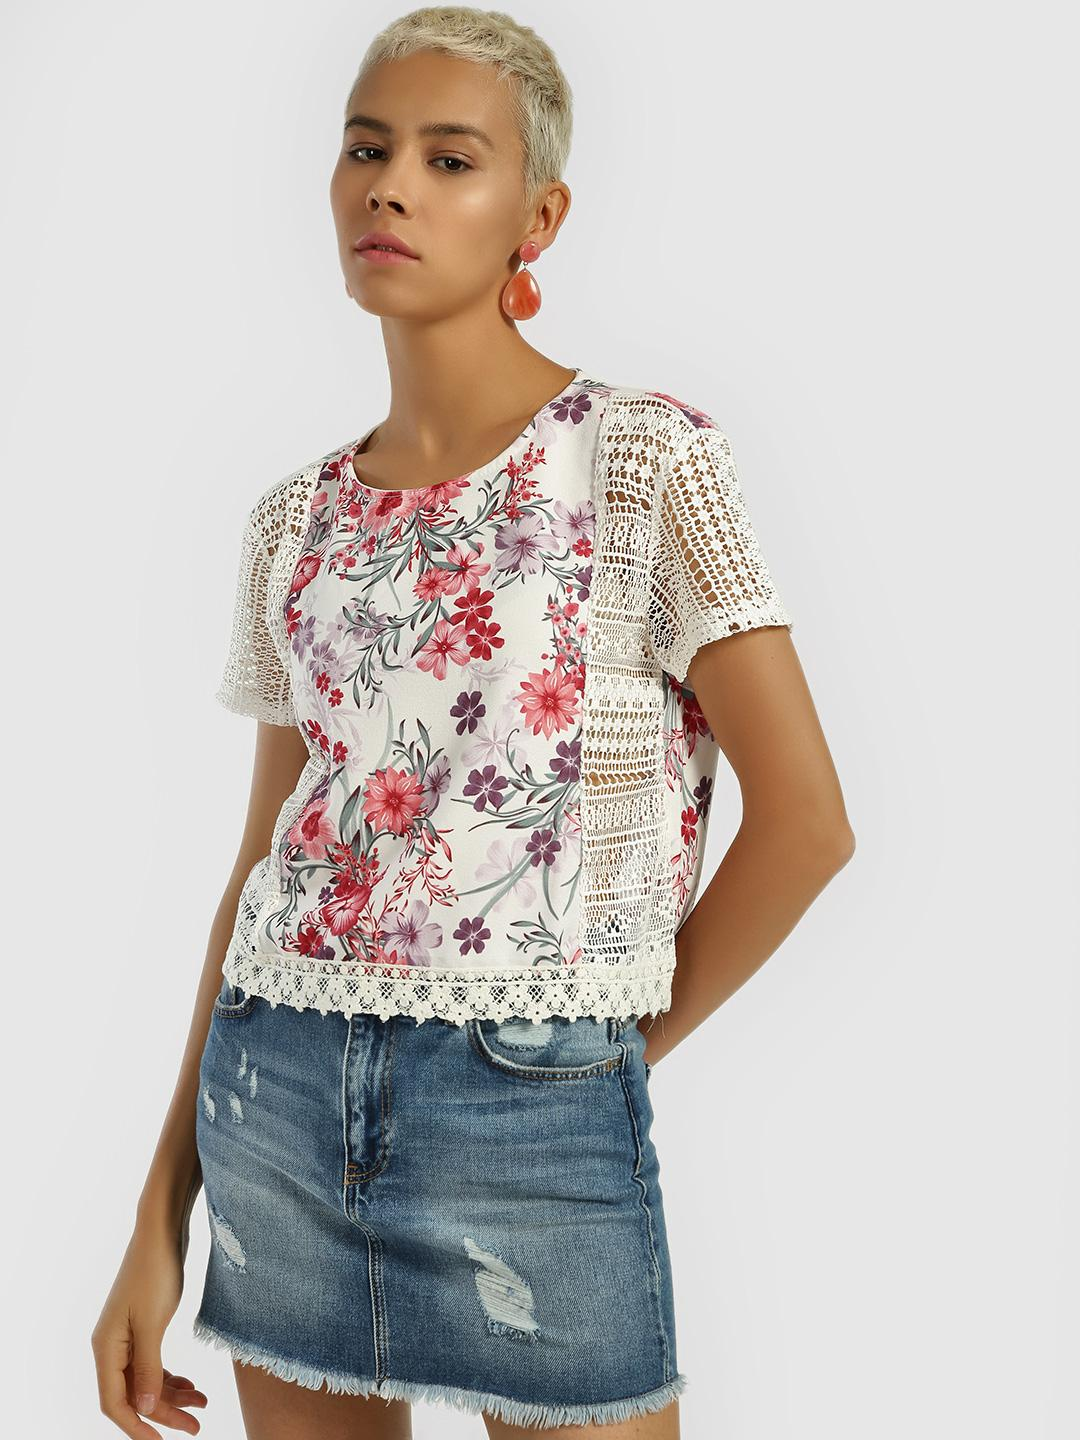 Privy League Multi Floral Print Lace Detail Top 1